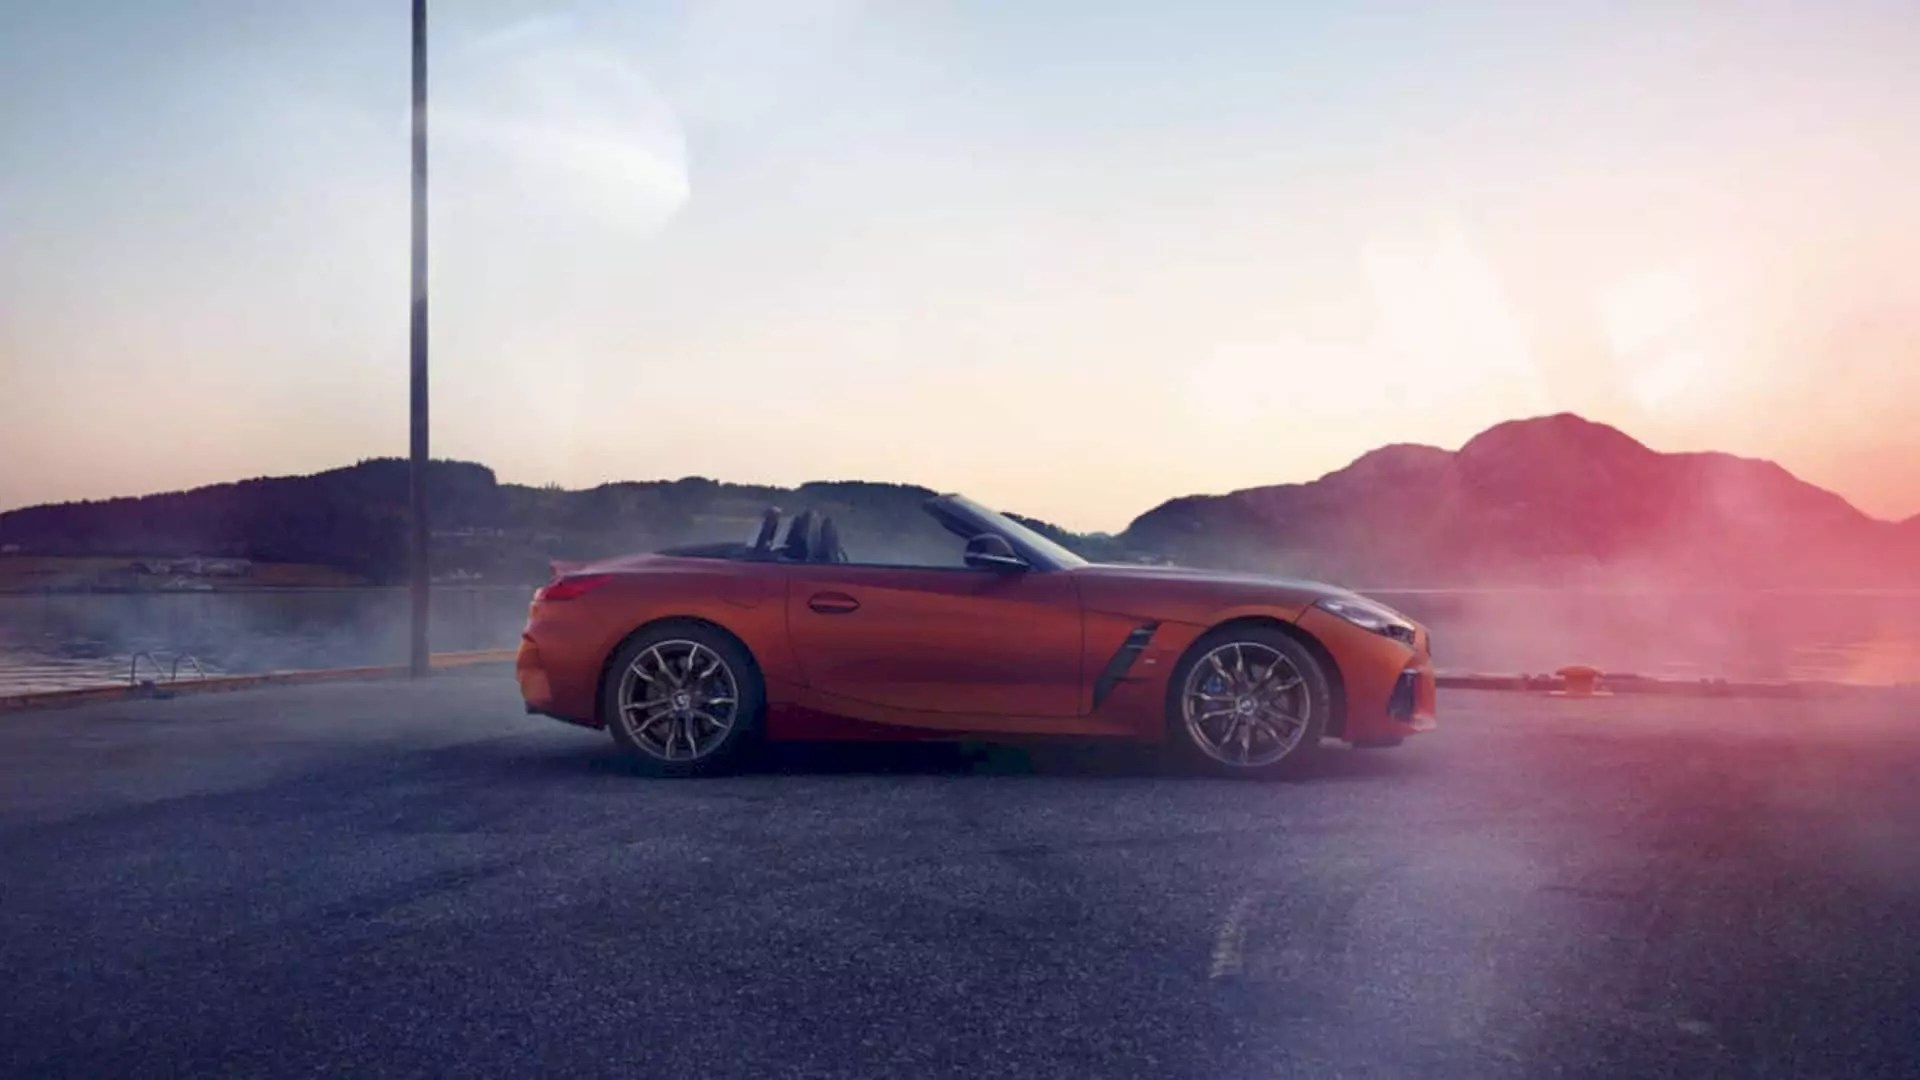 2019 BMW Z4 M40i: The New BMW's Design with the Most Surprising Feature